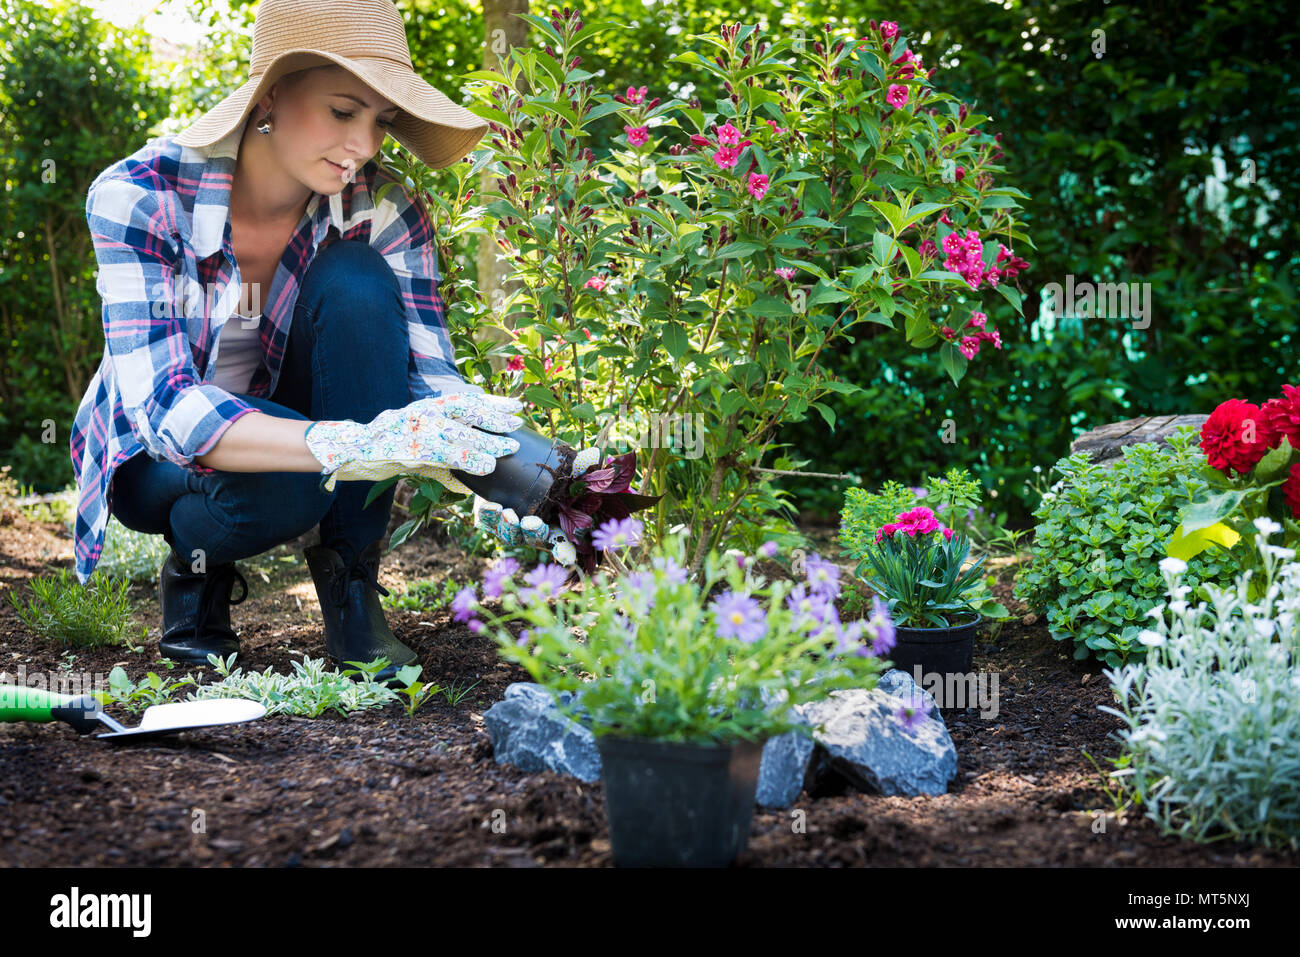 Beautiful female gardener wearing straw hat planting flowers in her garden. Gardening concept. Garden landscaping small business owner. - Stock Image